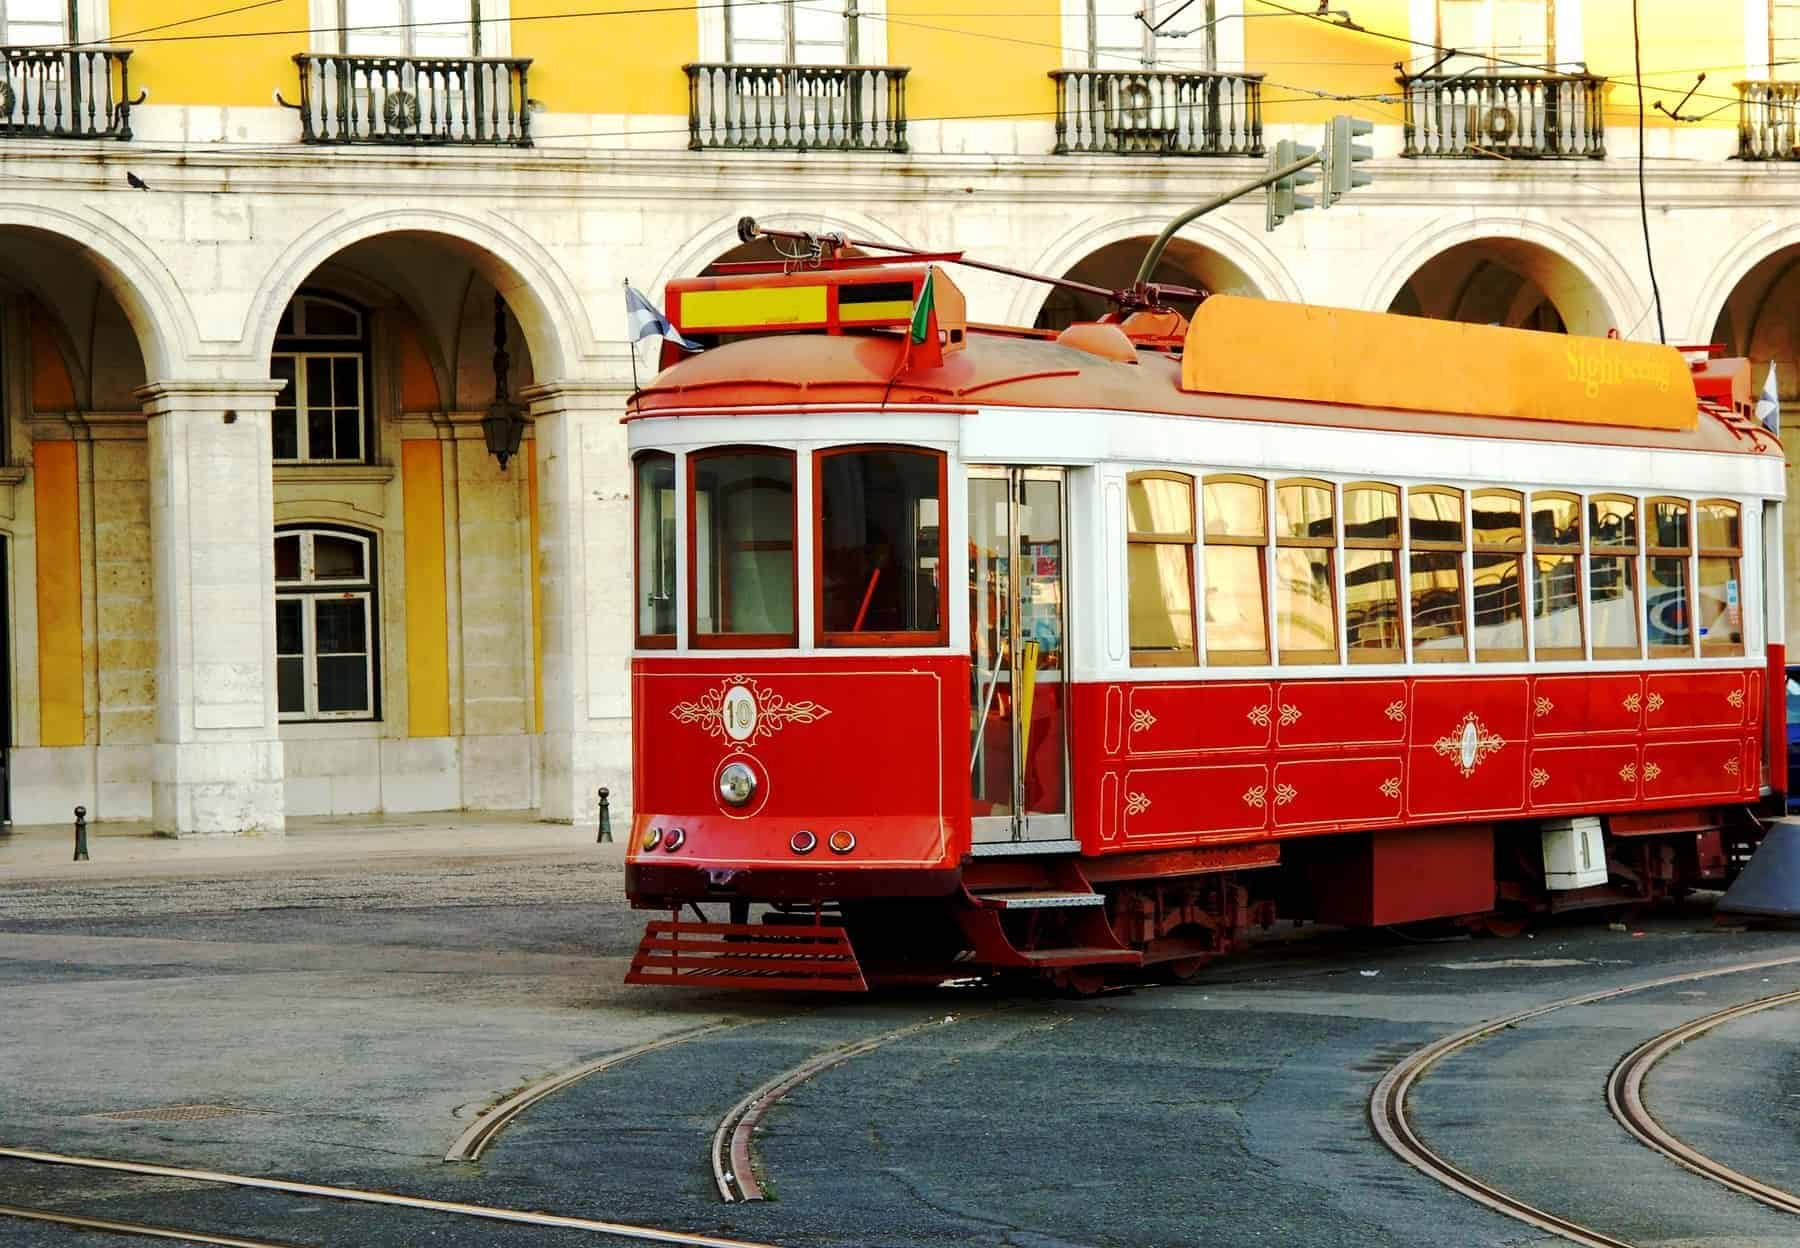 Portugal Lisbon historic part of town, trolley